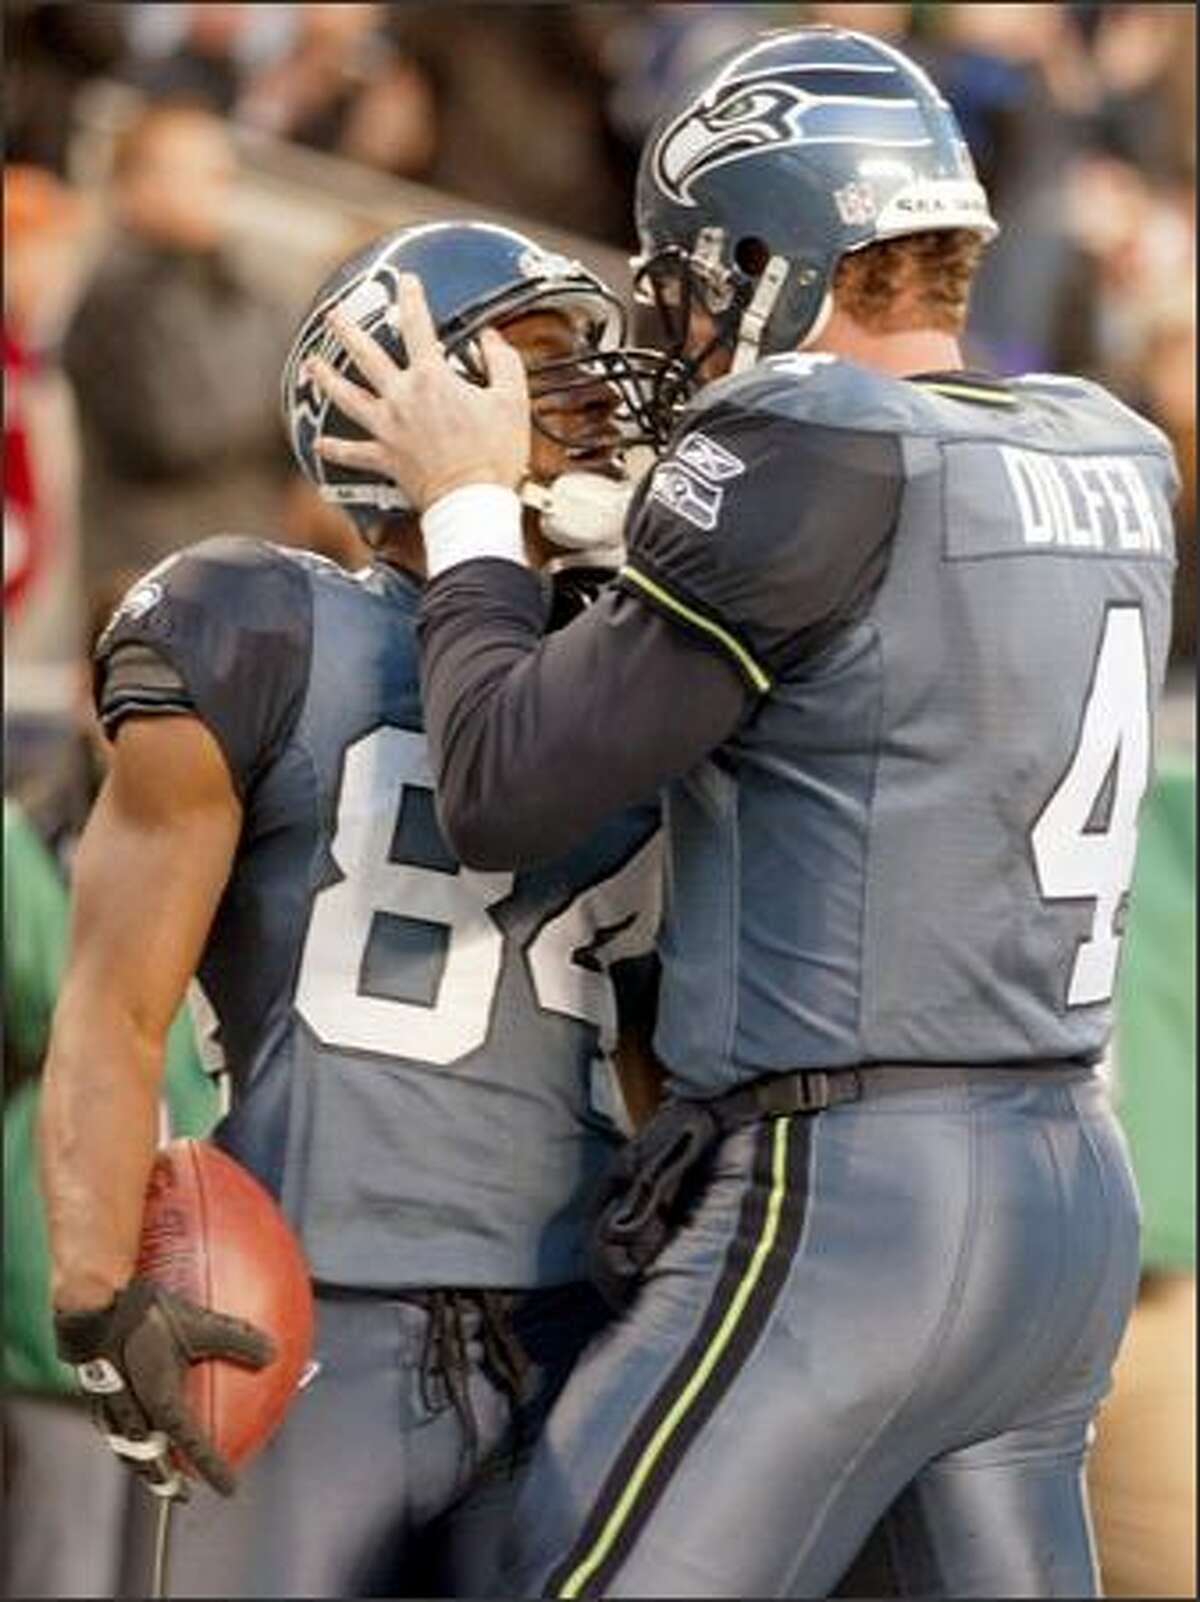 Trent Dilfer congratulates teammate Bobby Engram on his 3-yard touchdown with 3:16 left in the fourth quarter of play.